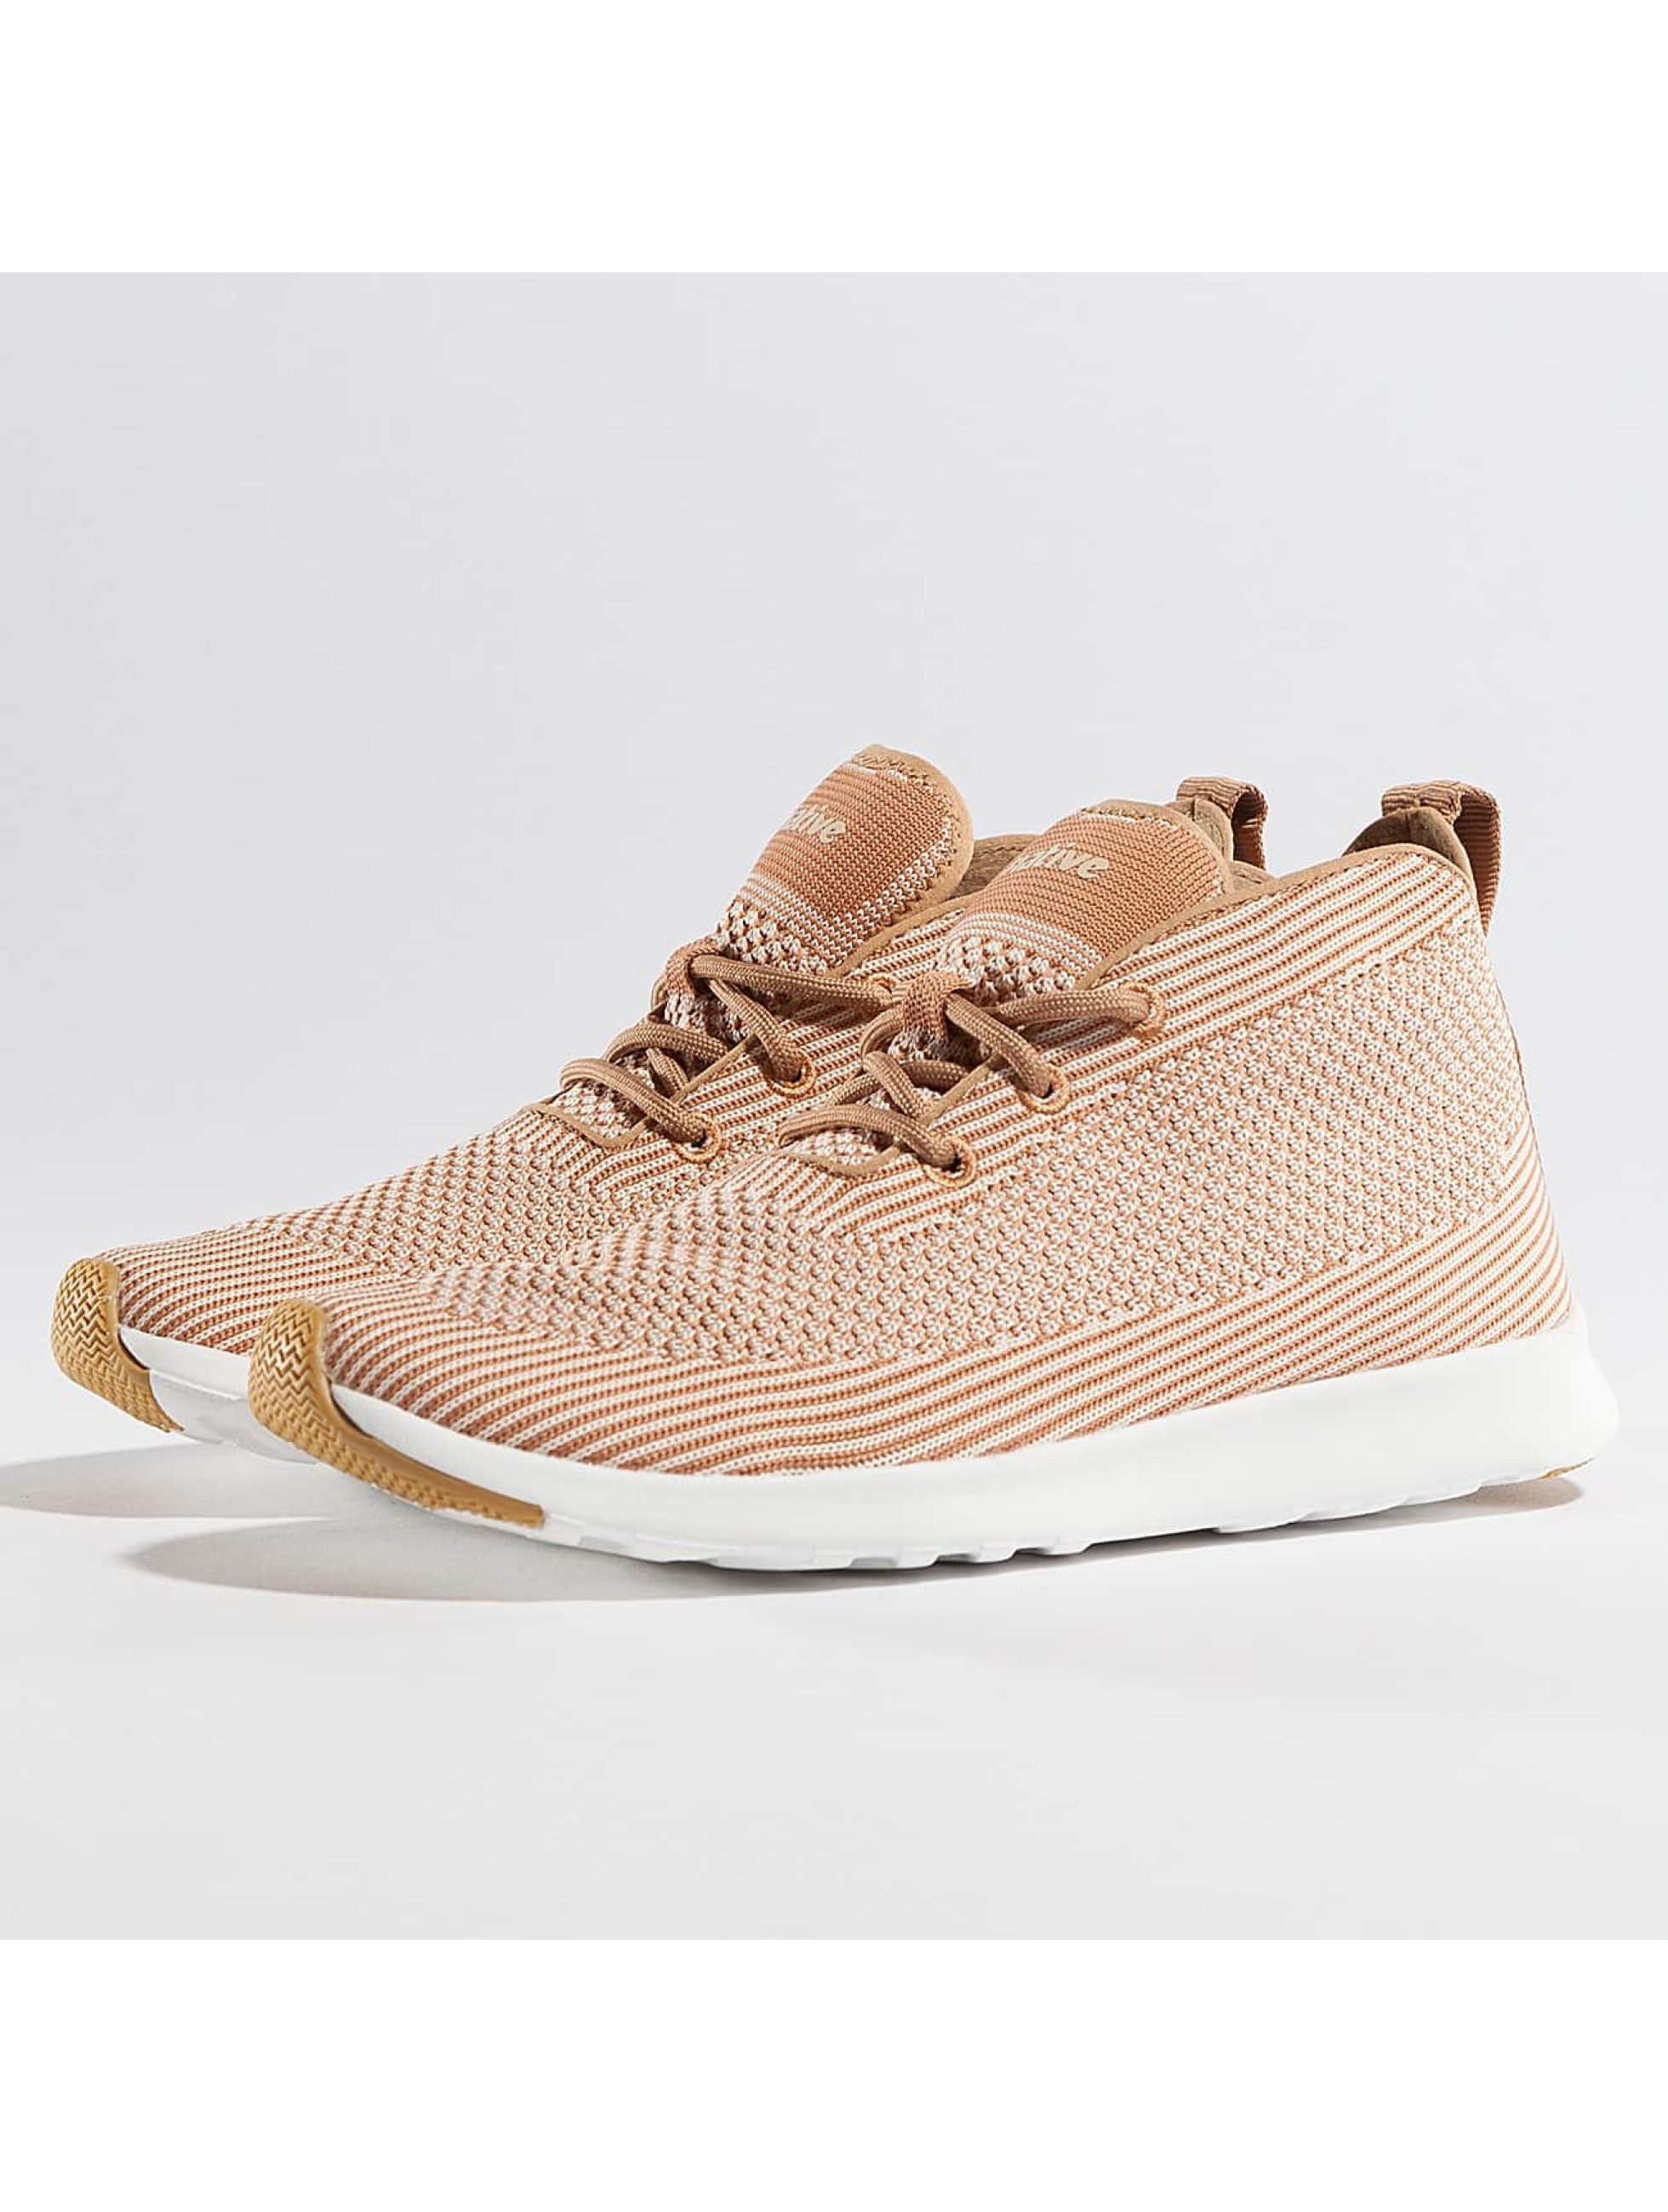 Native Frauen Sneaker AP Rover LiteKnit in beige